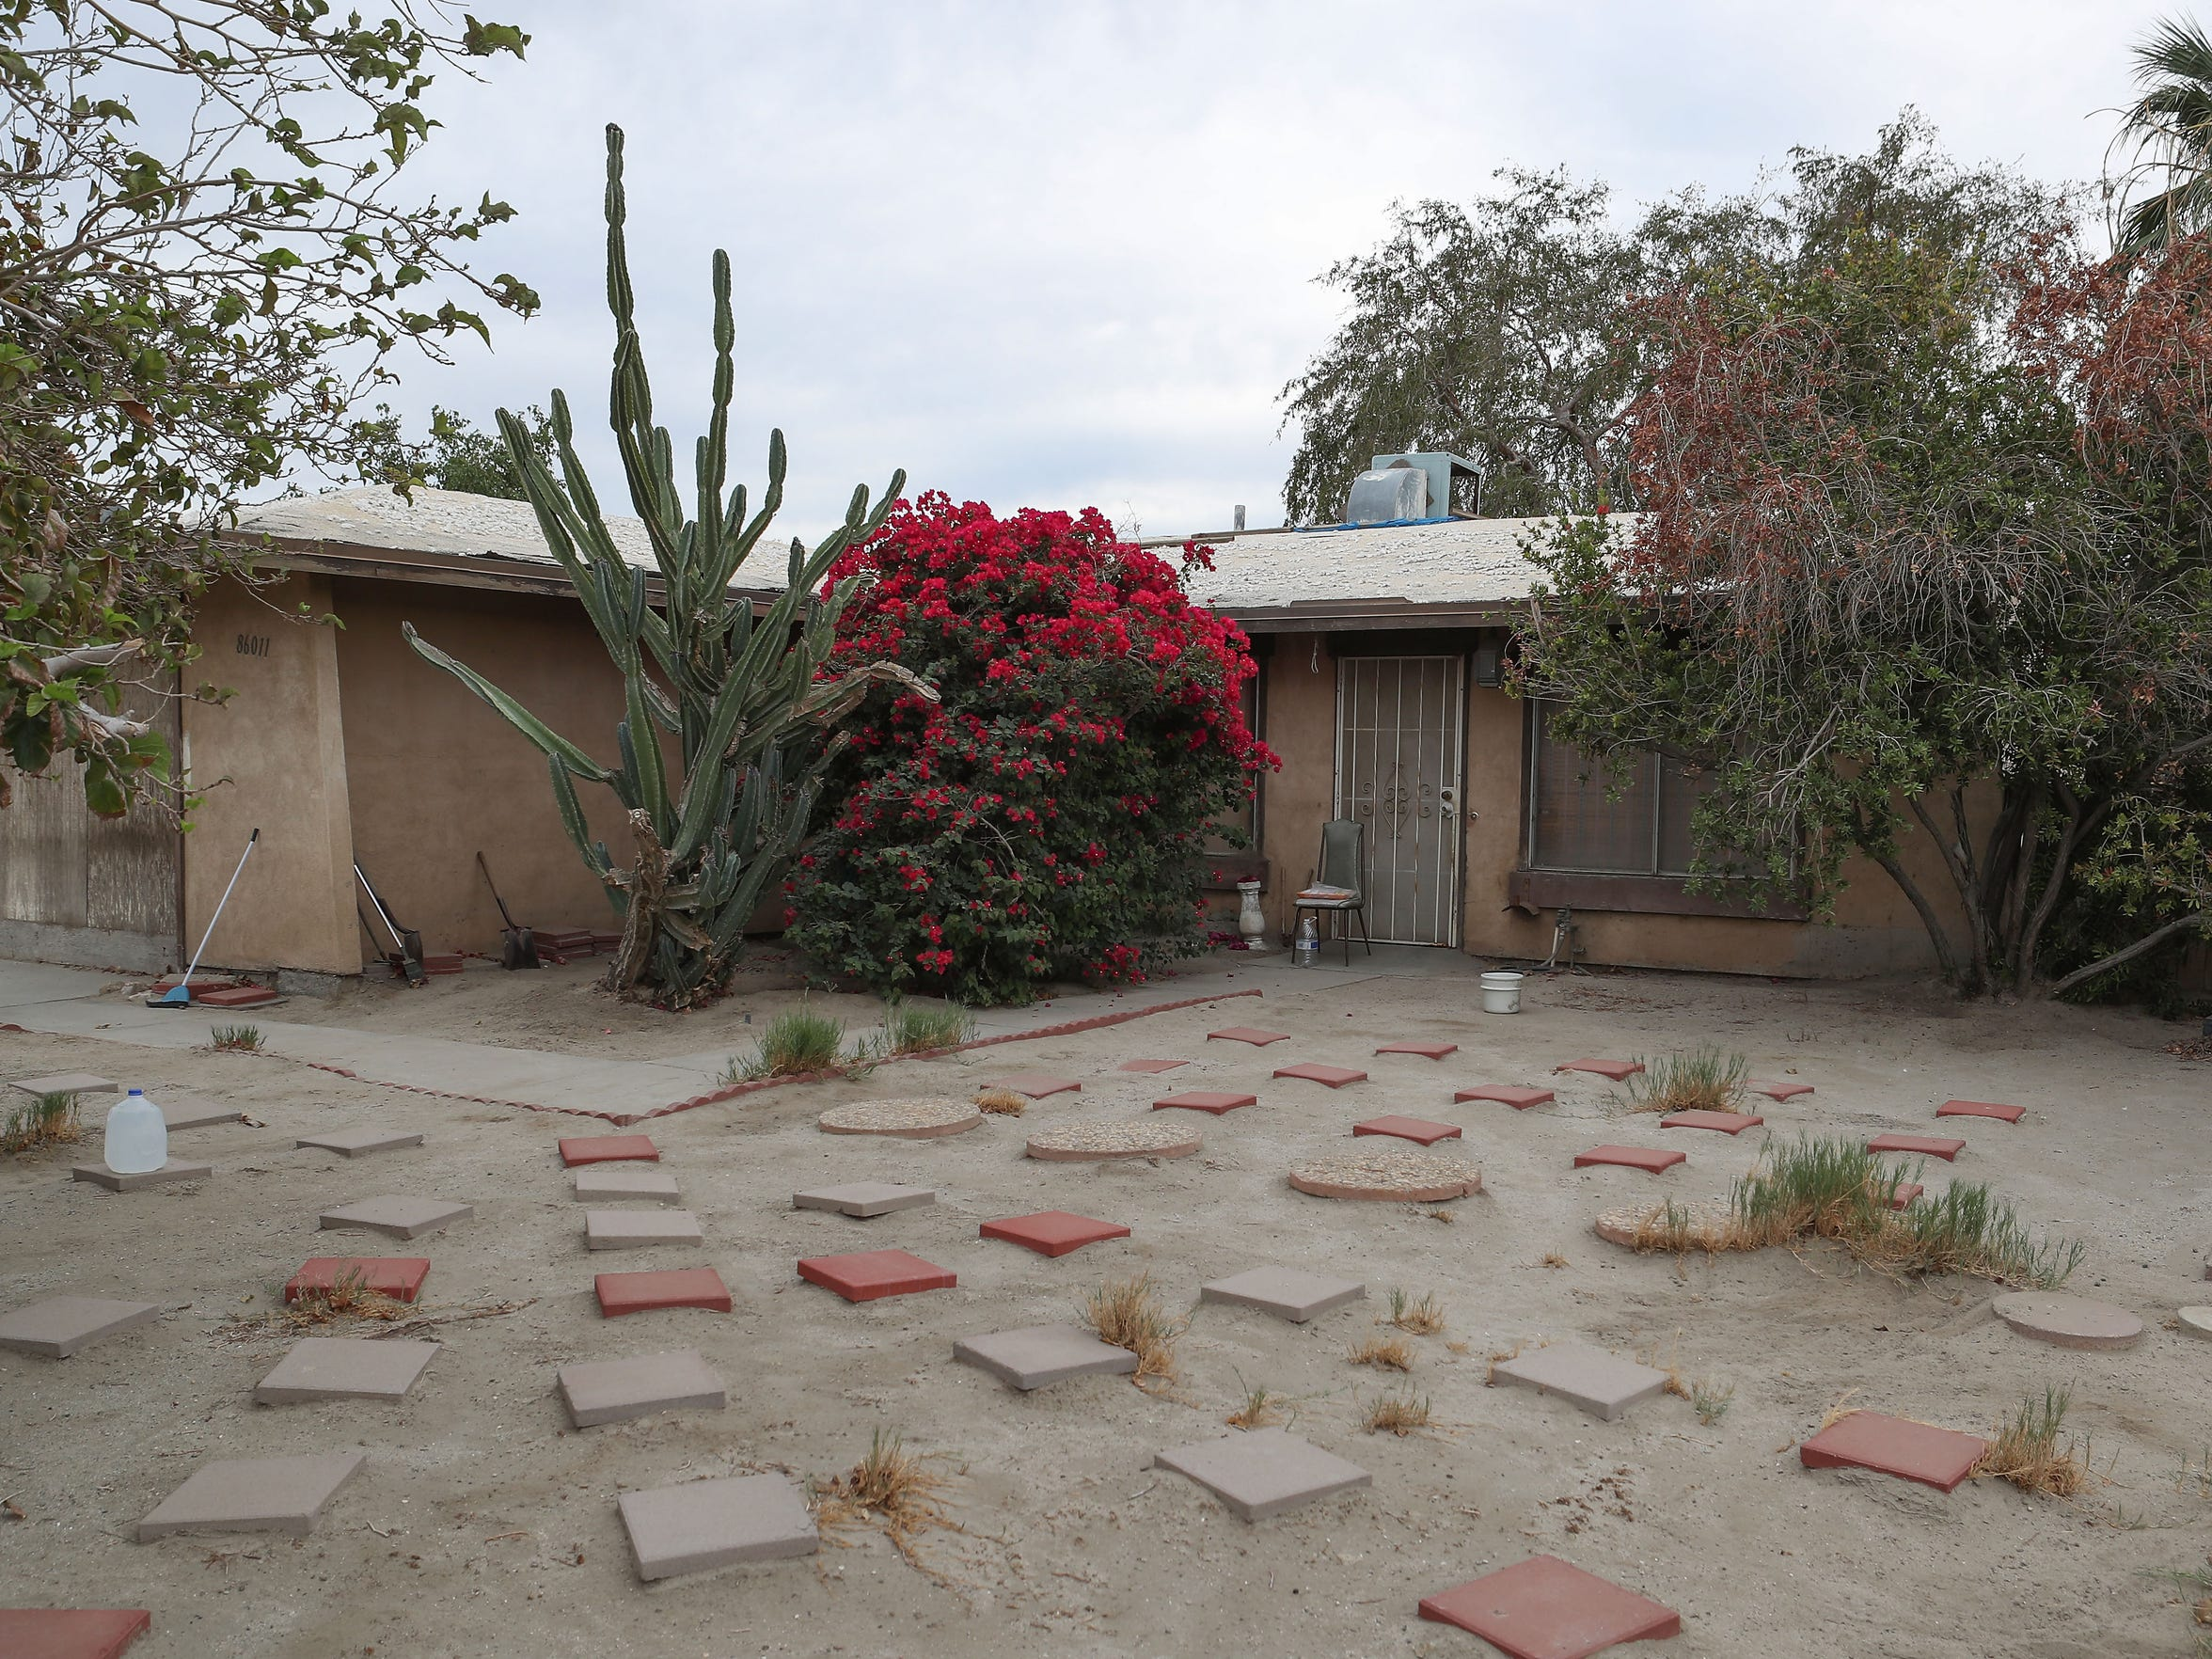 Coachella City Hall prosecuted the owner of this property because her yard was previously covered with broken appliances and overgrown vegetation. Now, city prosecutors have demanded the owner pay $25,200 for the cost of her own prosecution. If she doesn't pay, they may take her home.